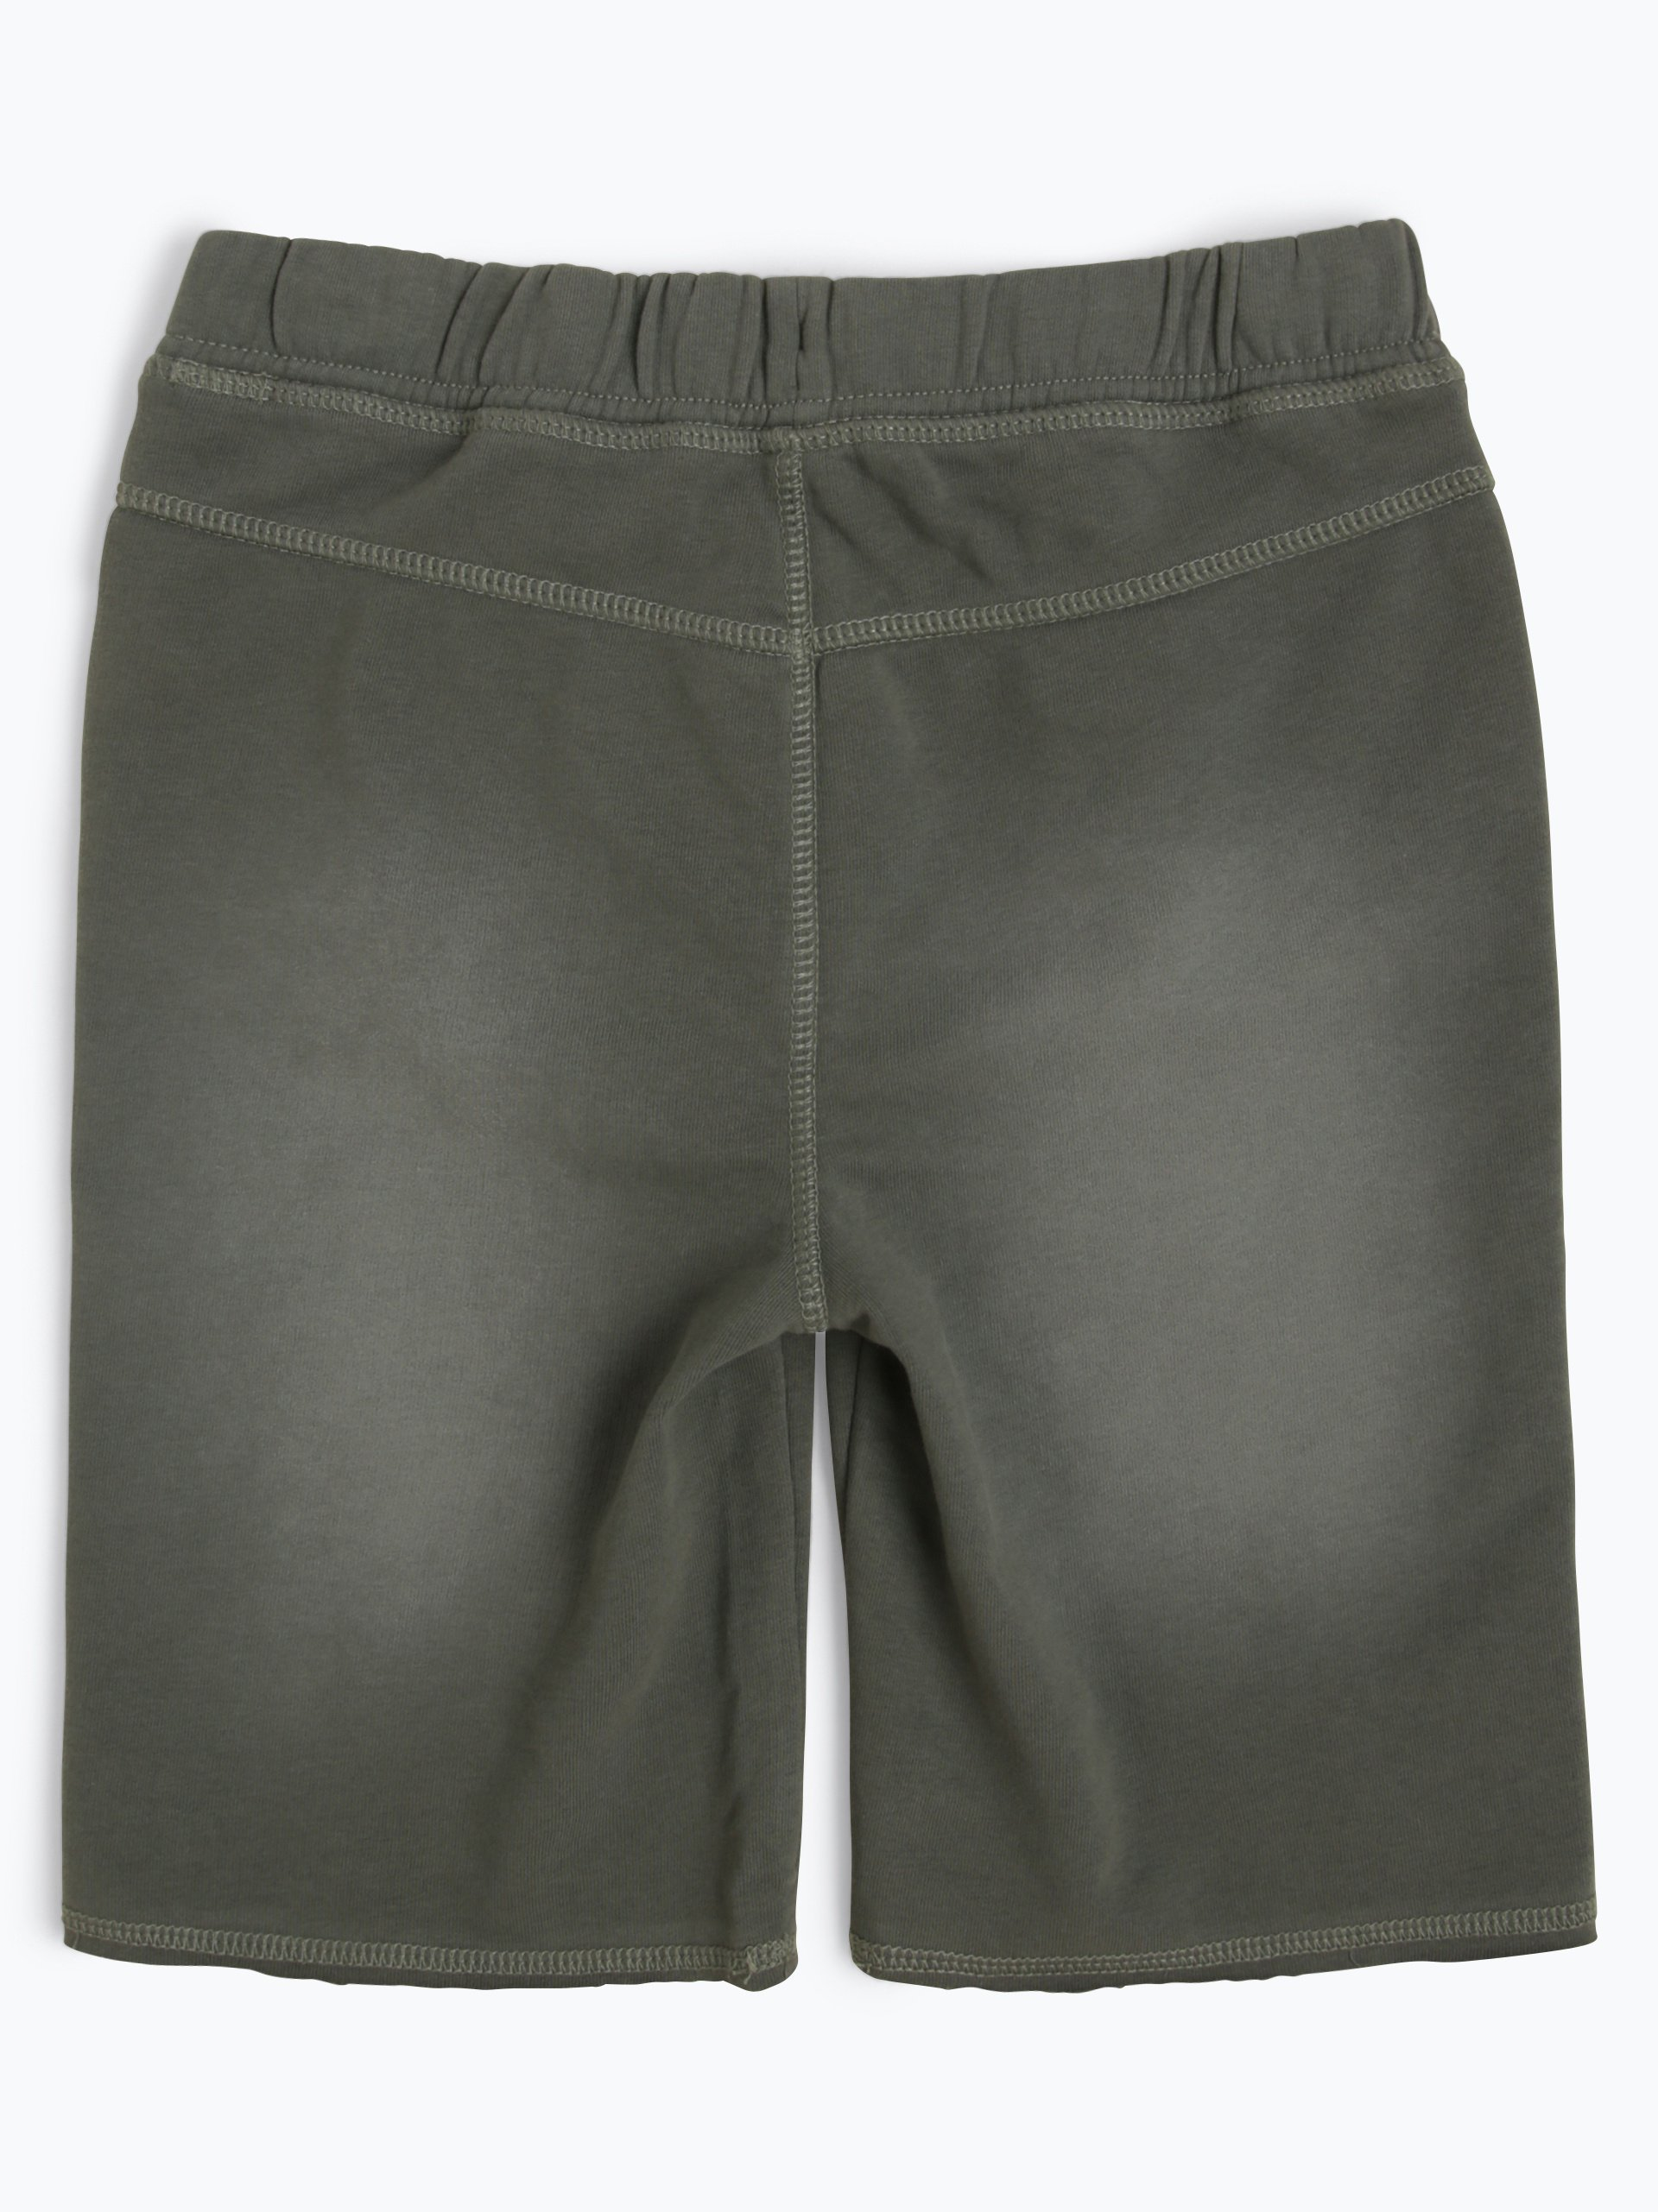 s.Oliver Casual Jungen Shorts